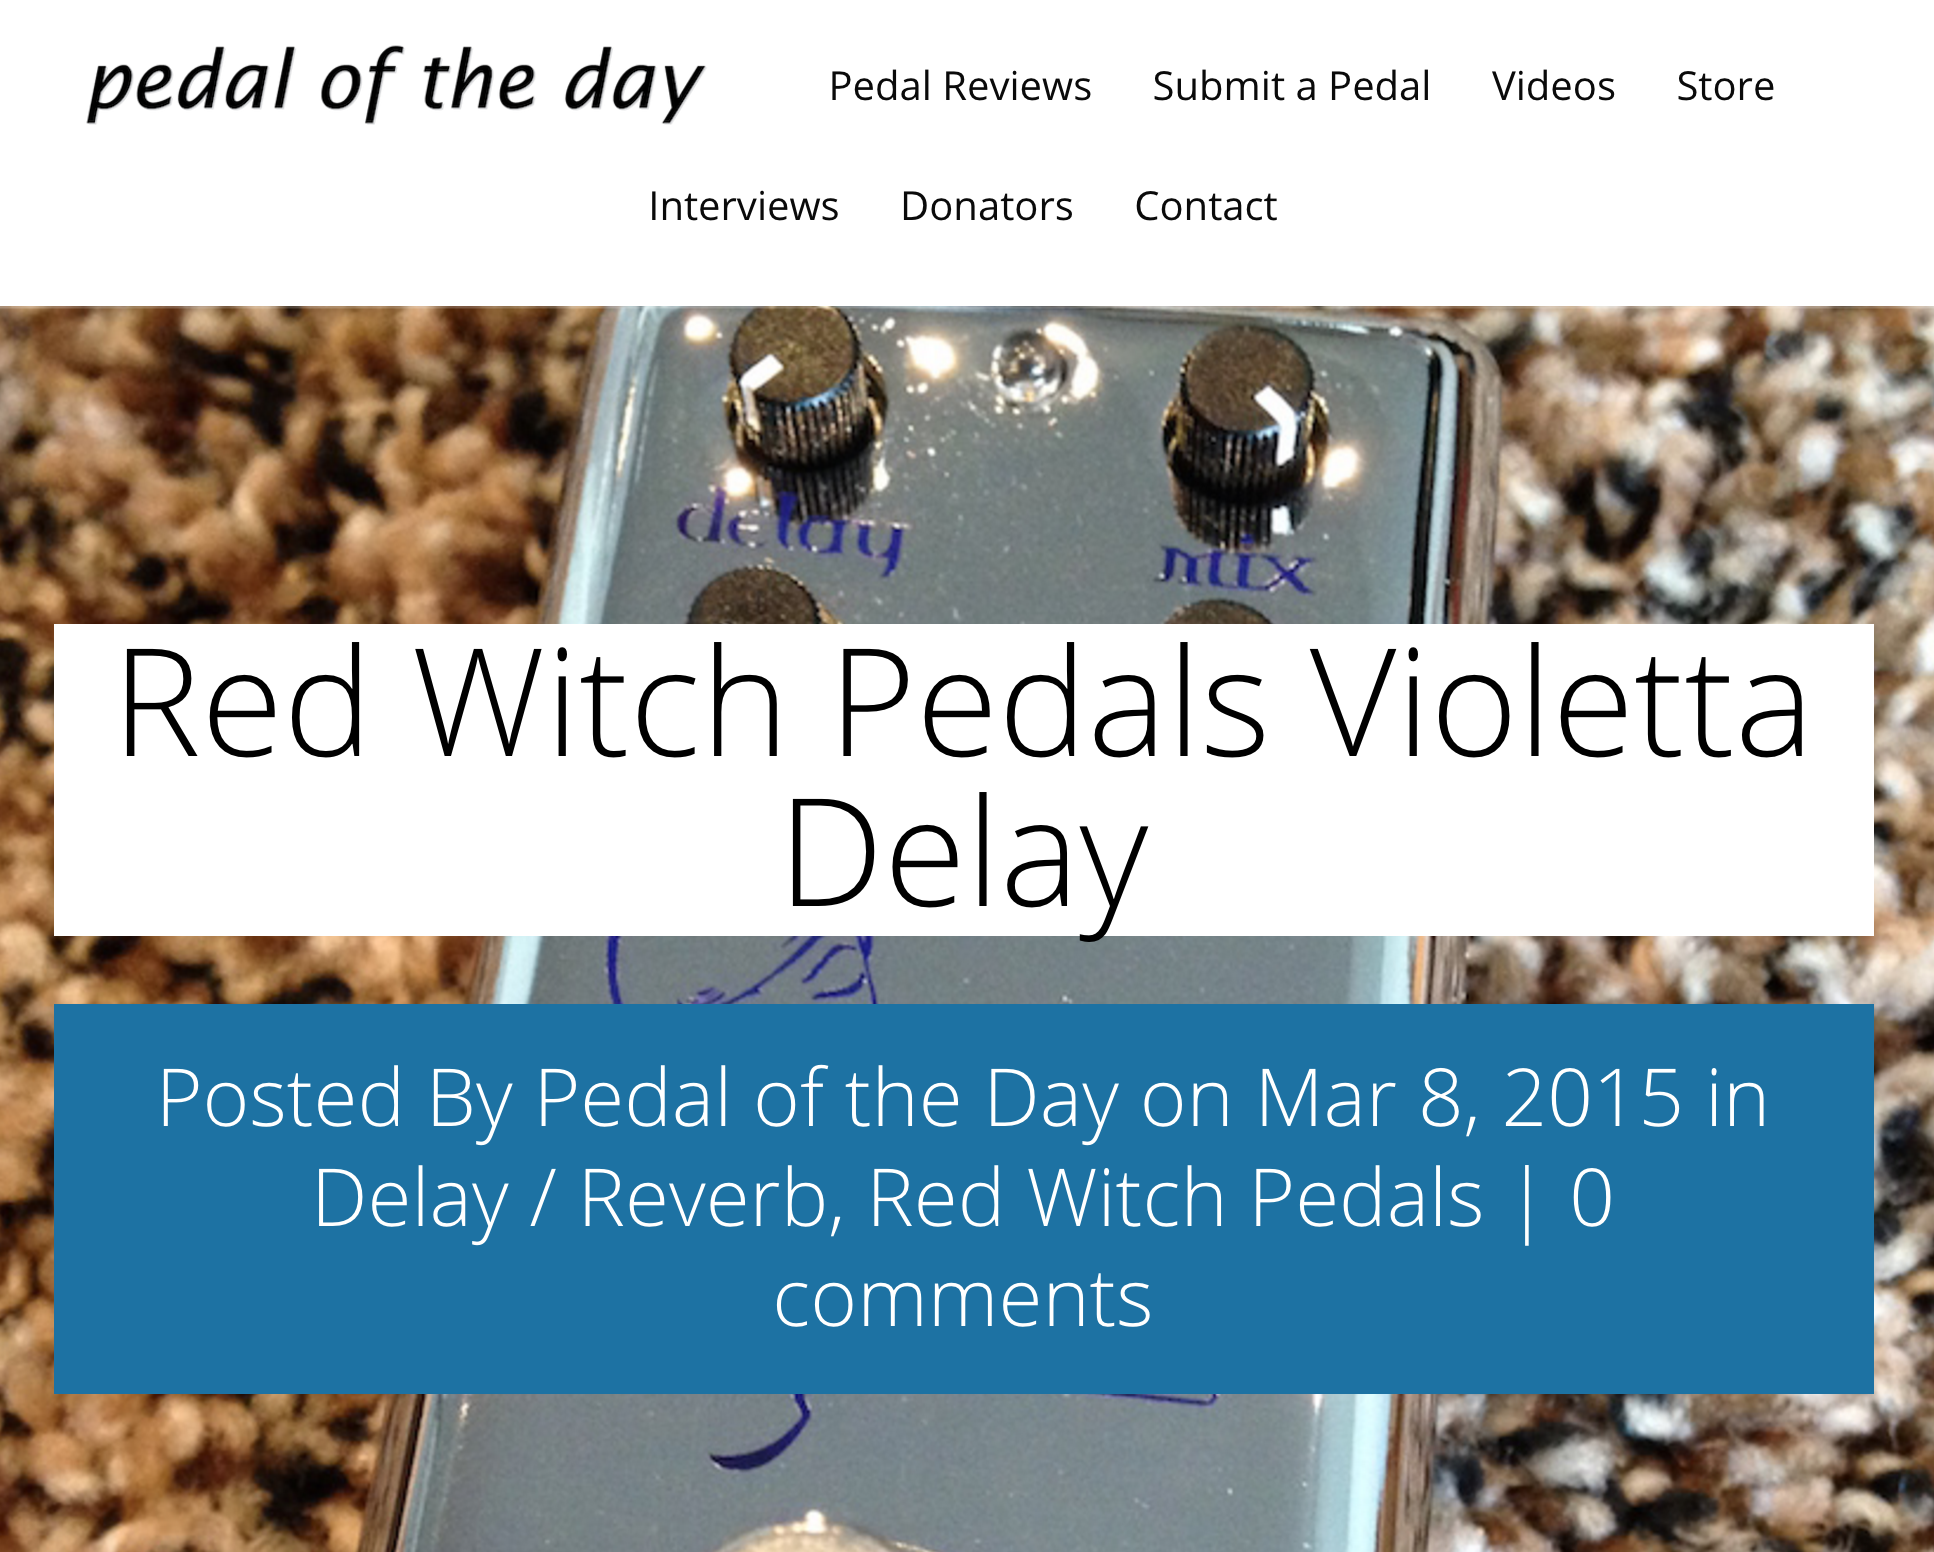 Pedal of the Day - Violetta